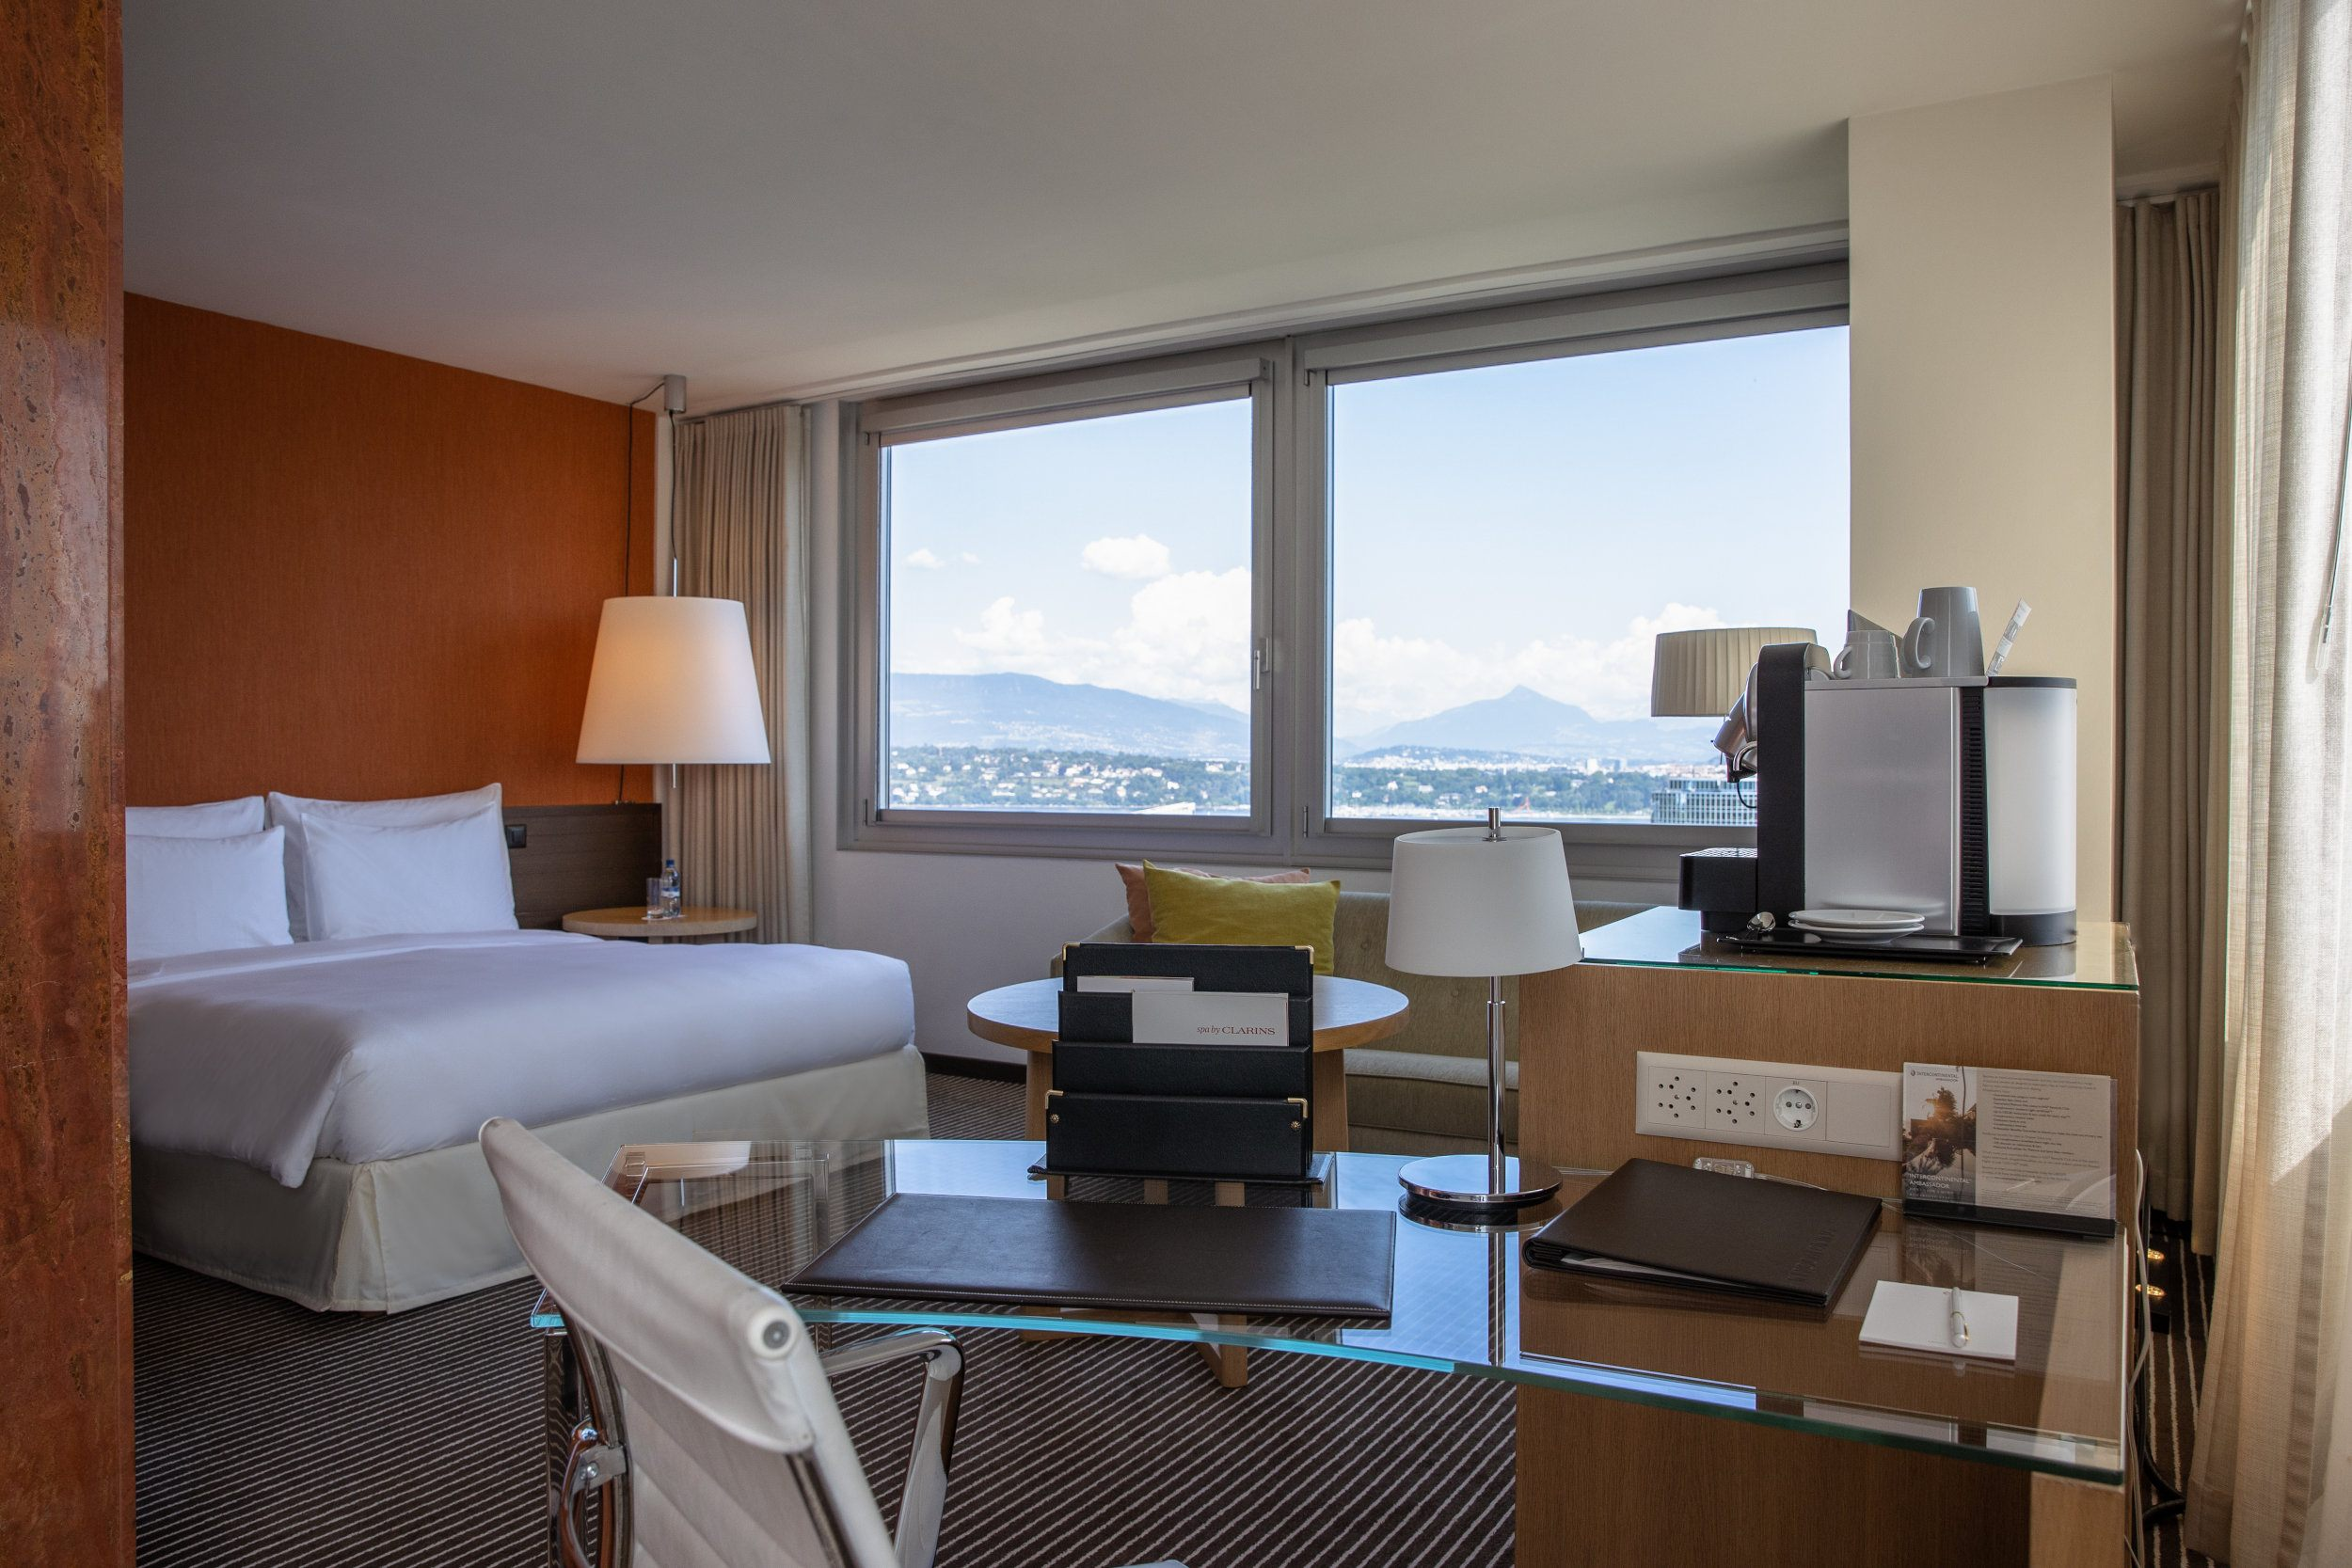 InterContinental-Geneva-Suites-and-rooms-Executive-lake-view-room-3